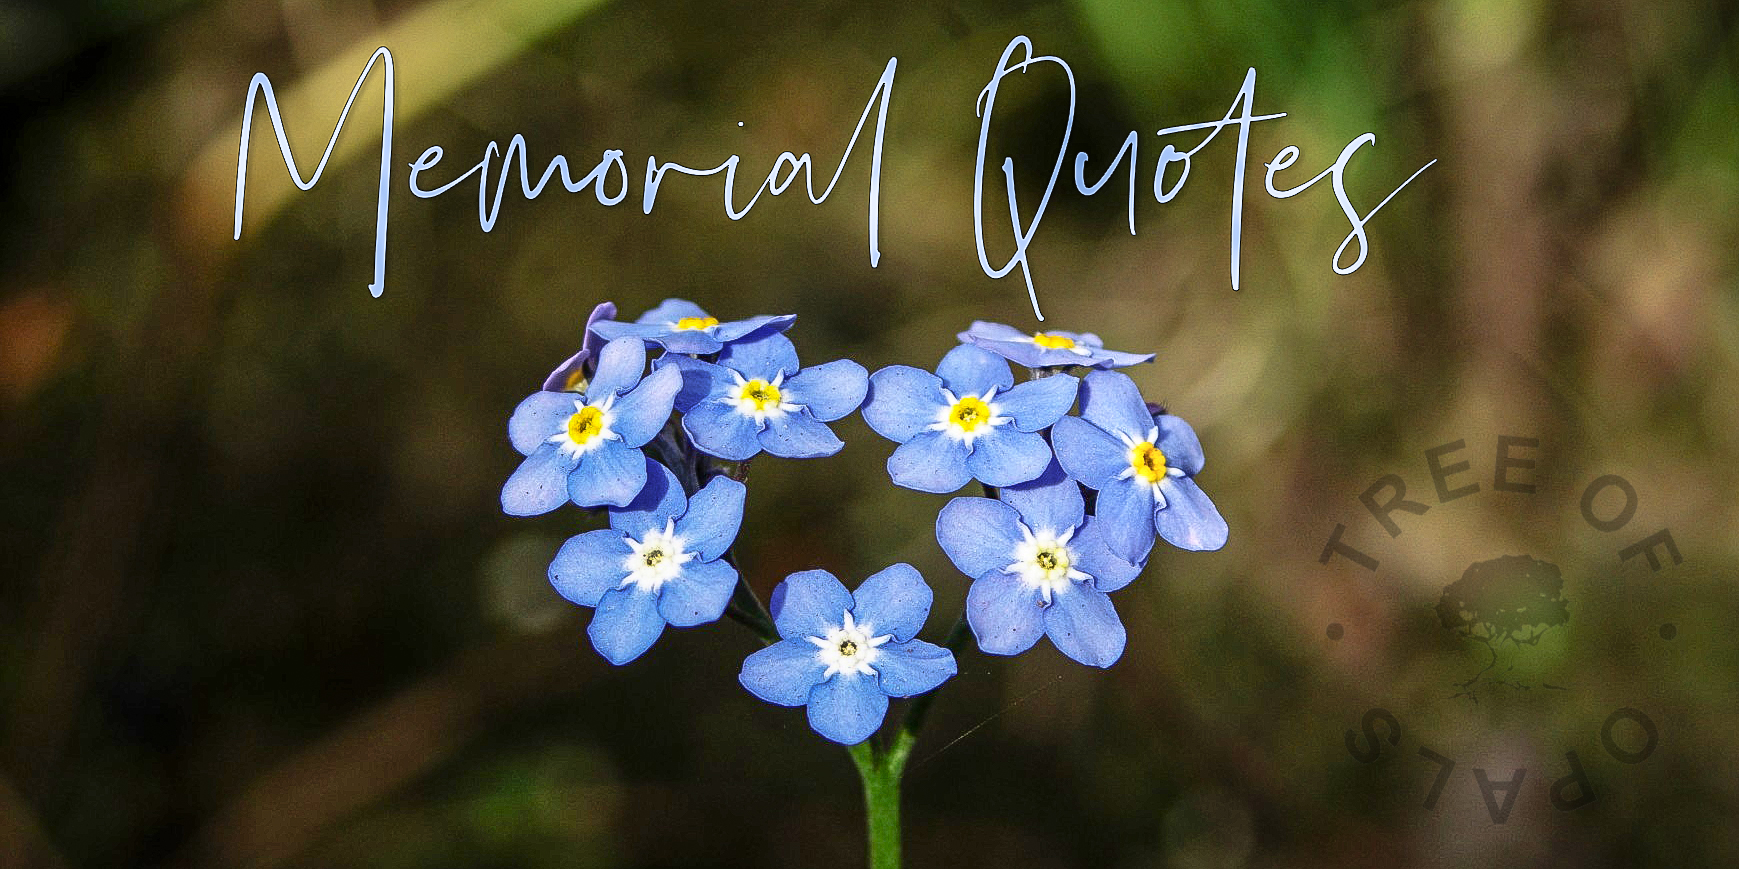 memorial quotes from Tree of Opals for keepsakes and memorials like urns and jewellery